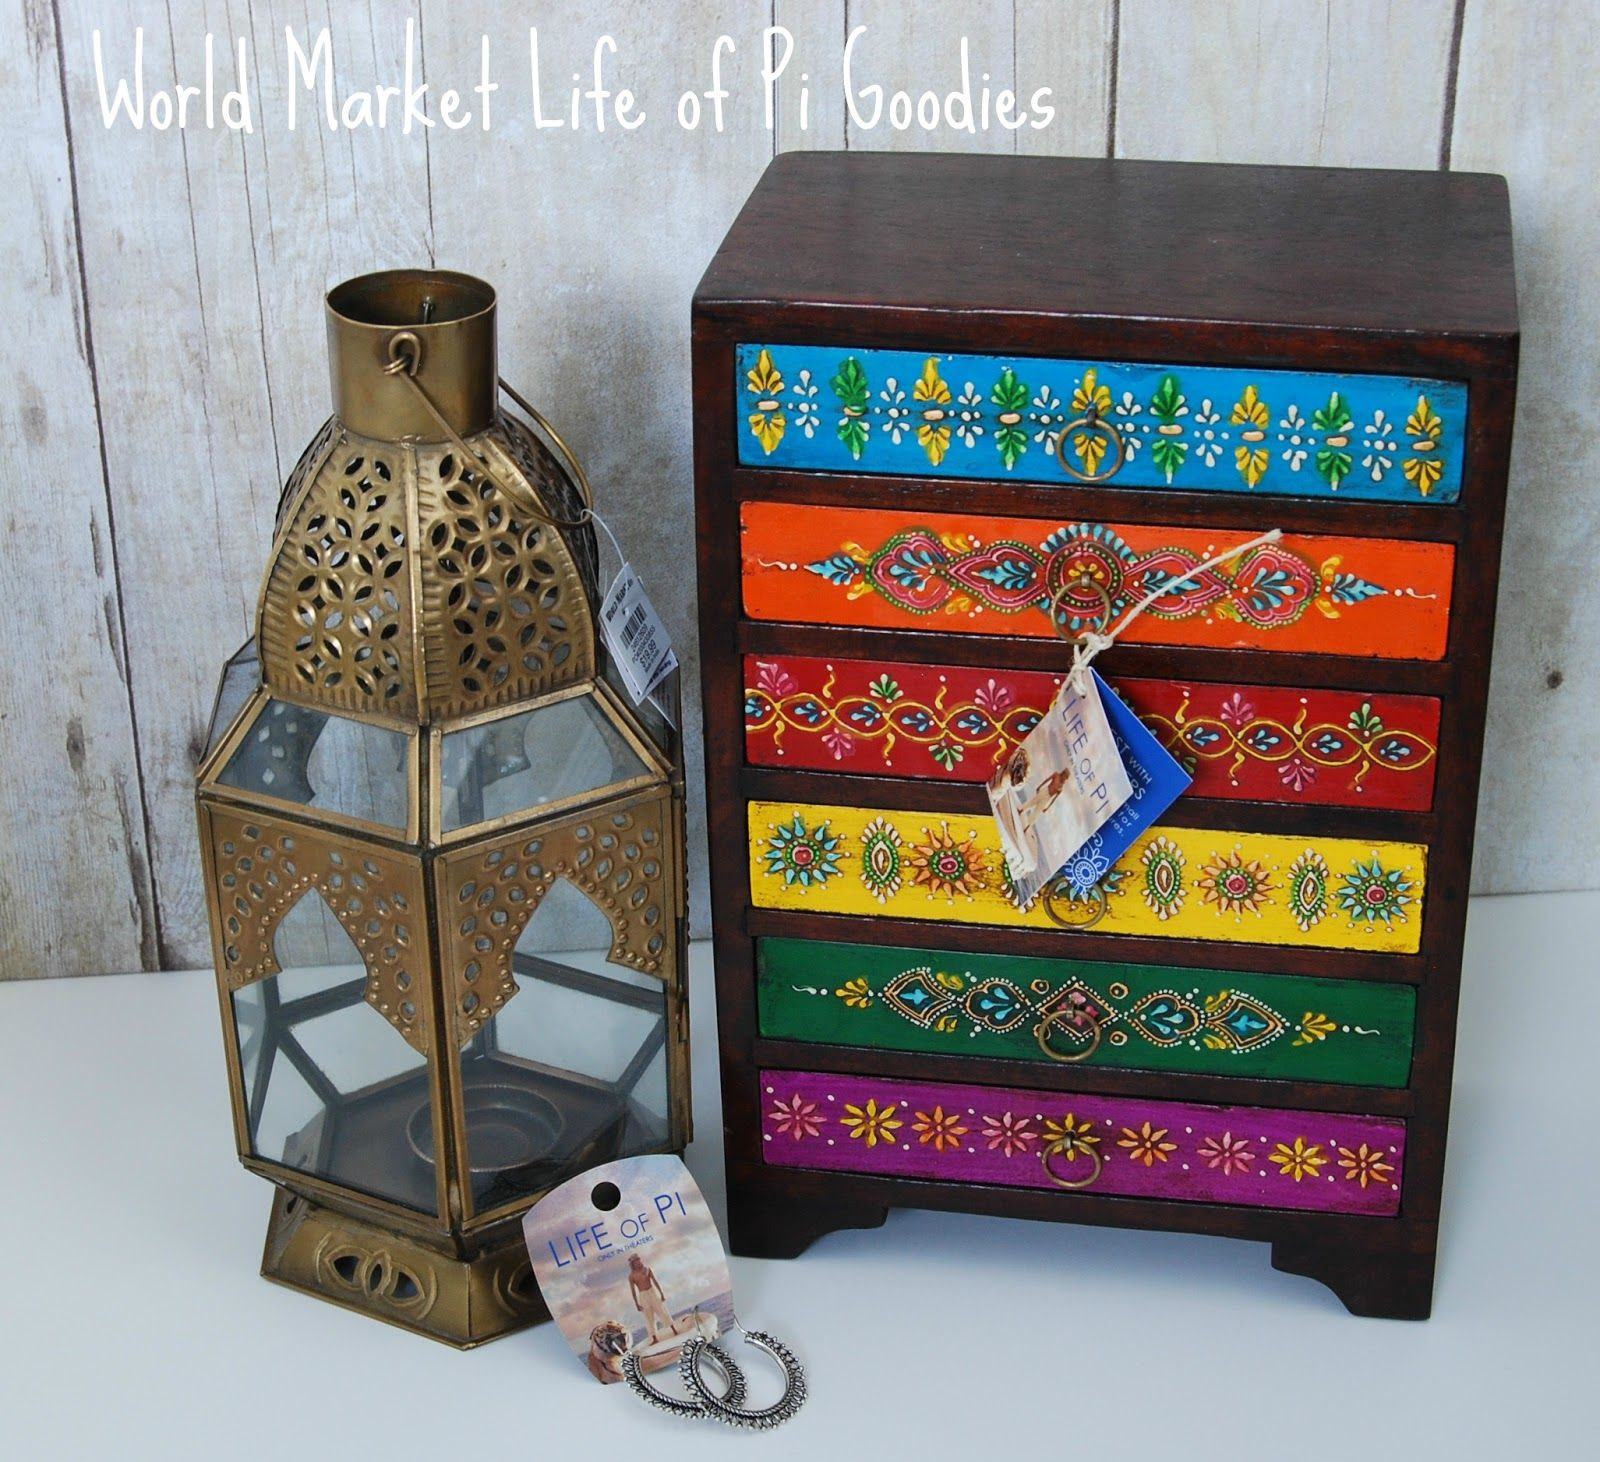 World Market Jewelry Box Inspiration Worldmarketlifeofpipurchases 1600×1462  Kdeb  Pinterest Review